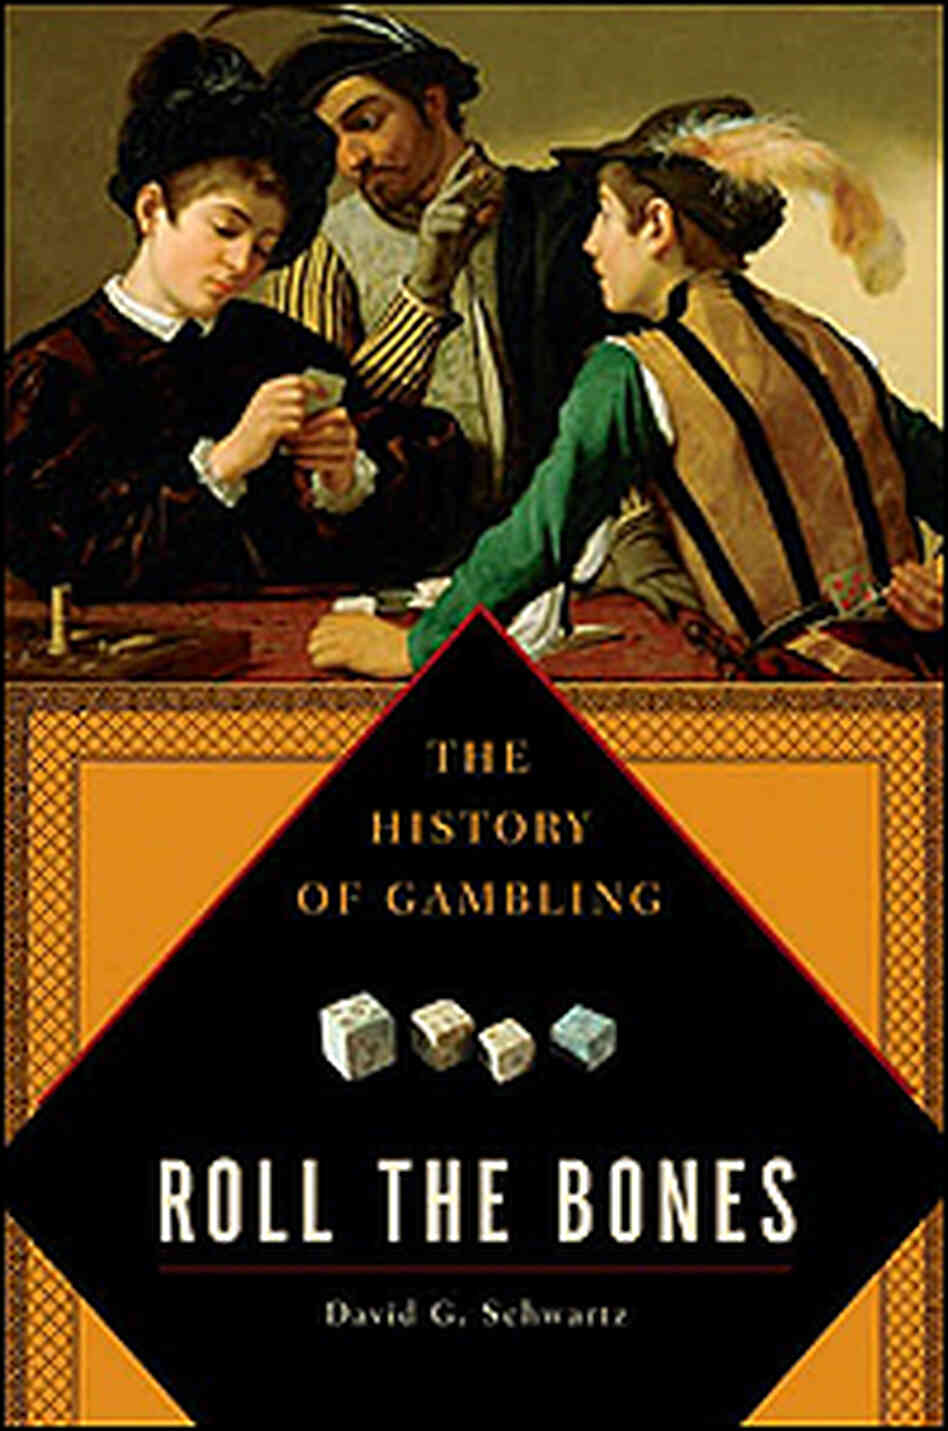 Cover of 'Roll the Bones' shows gamblers from an earlier century.